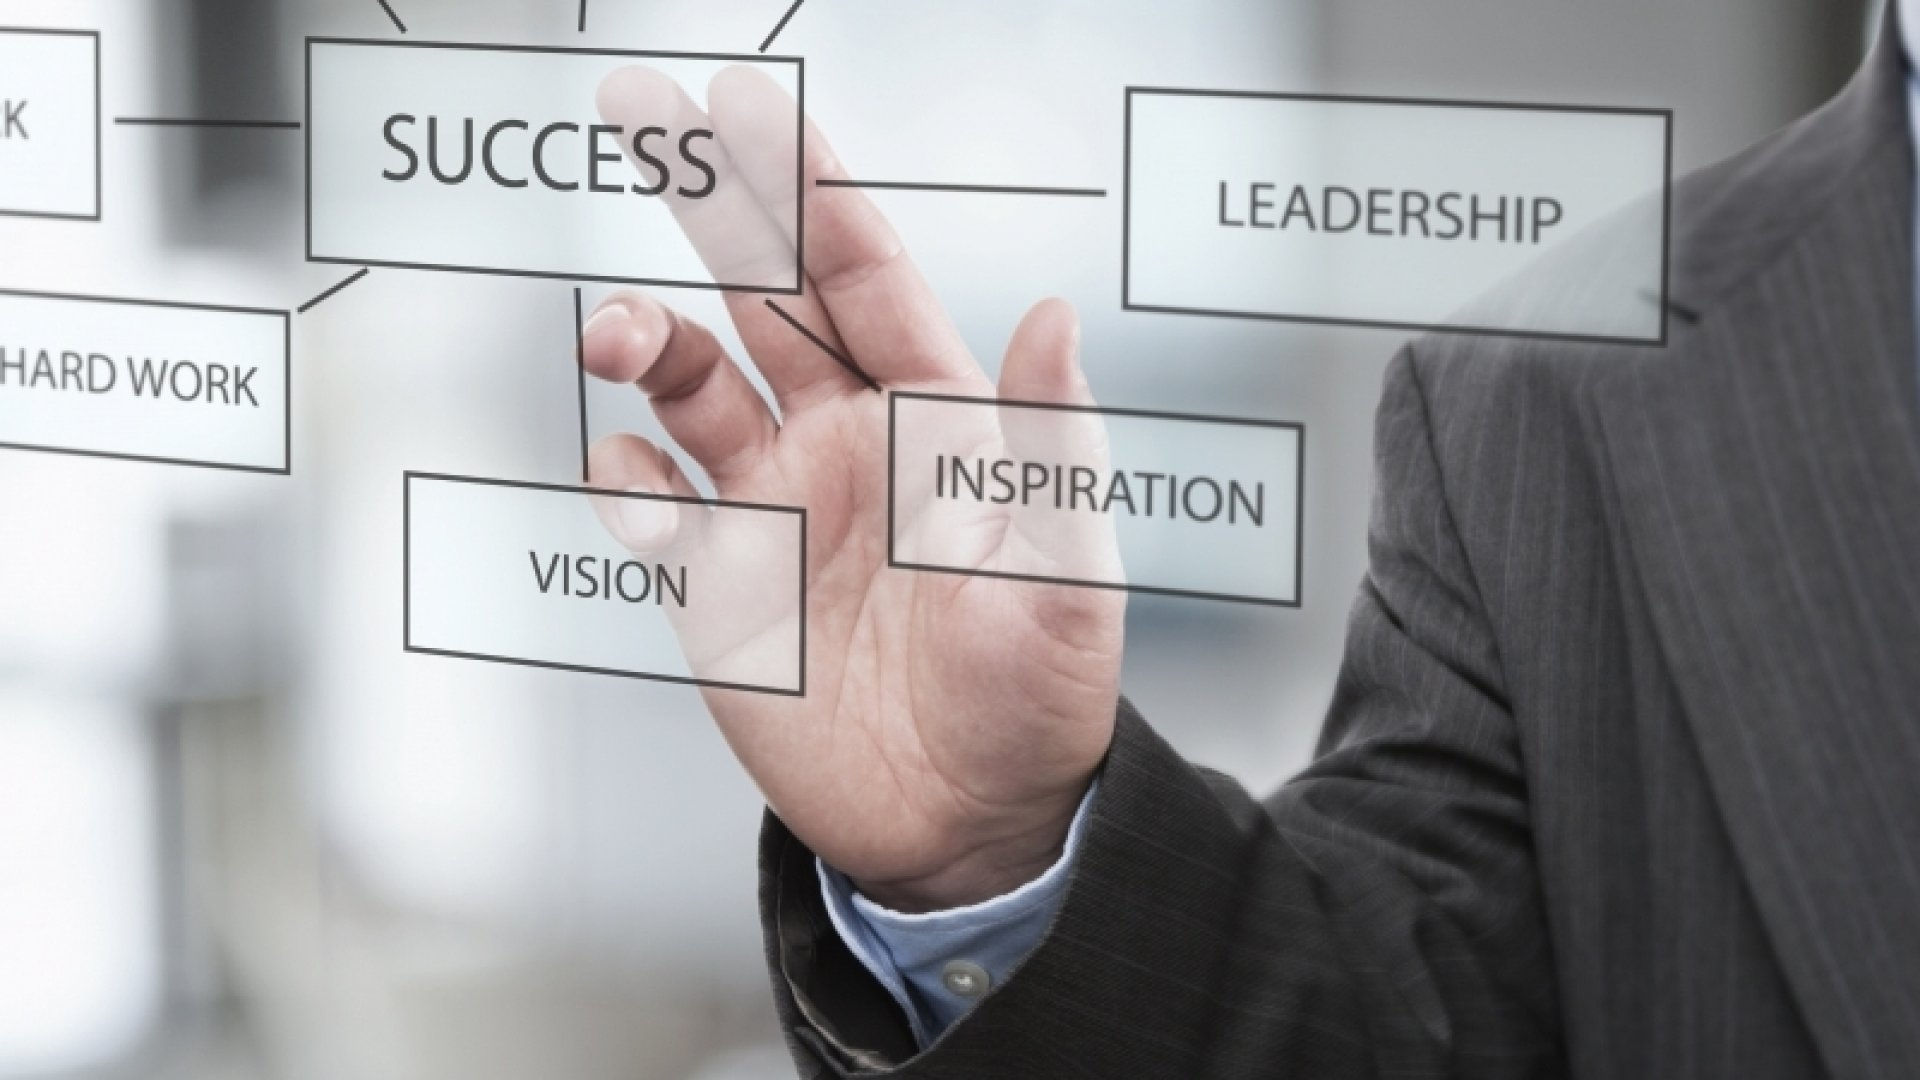 What Is the True Meaning of Success?